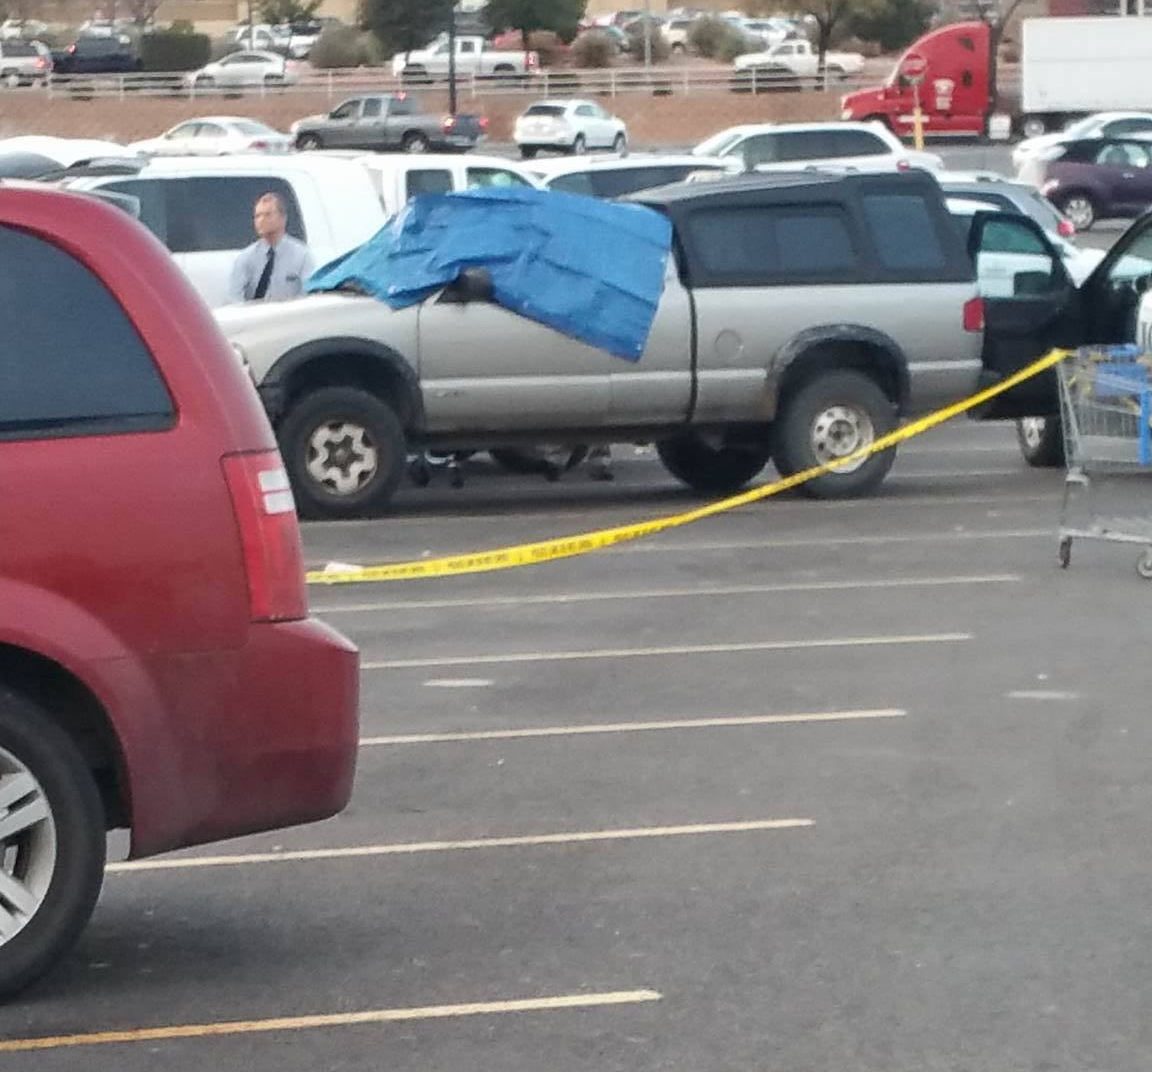 A man was discovered dead in his truck Tuesday at the Washington Wal-Mart. Washington, Utah, Jan. 3, 2017 | Photo courtesy of Matt Thompson, St. George News